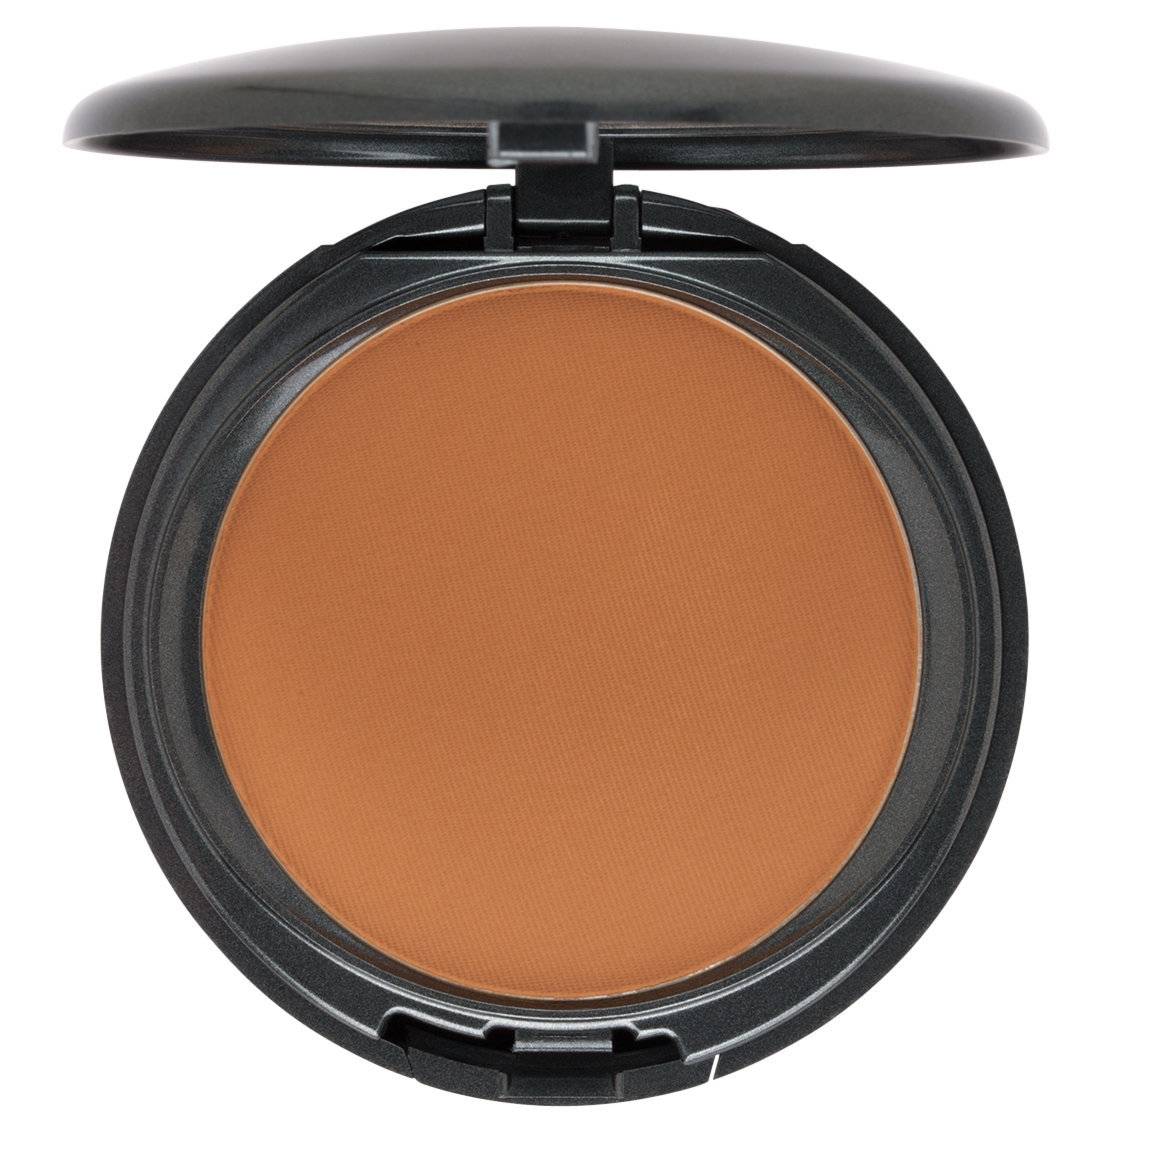 COVER | FX Pressed Mineral Foundation N85 product swatch.